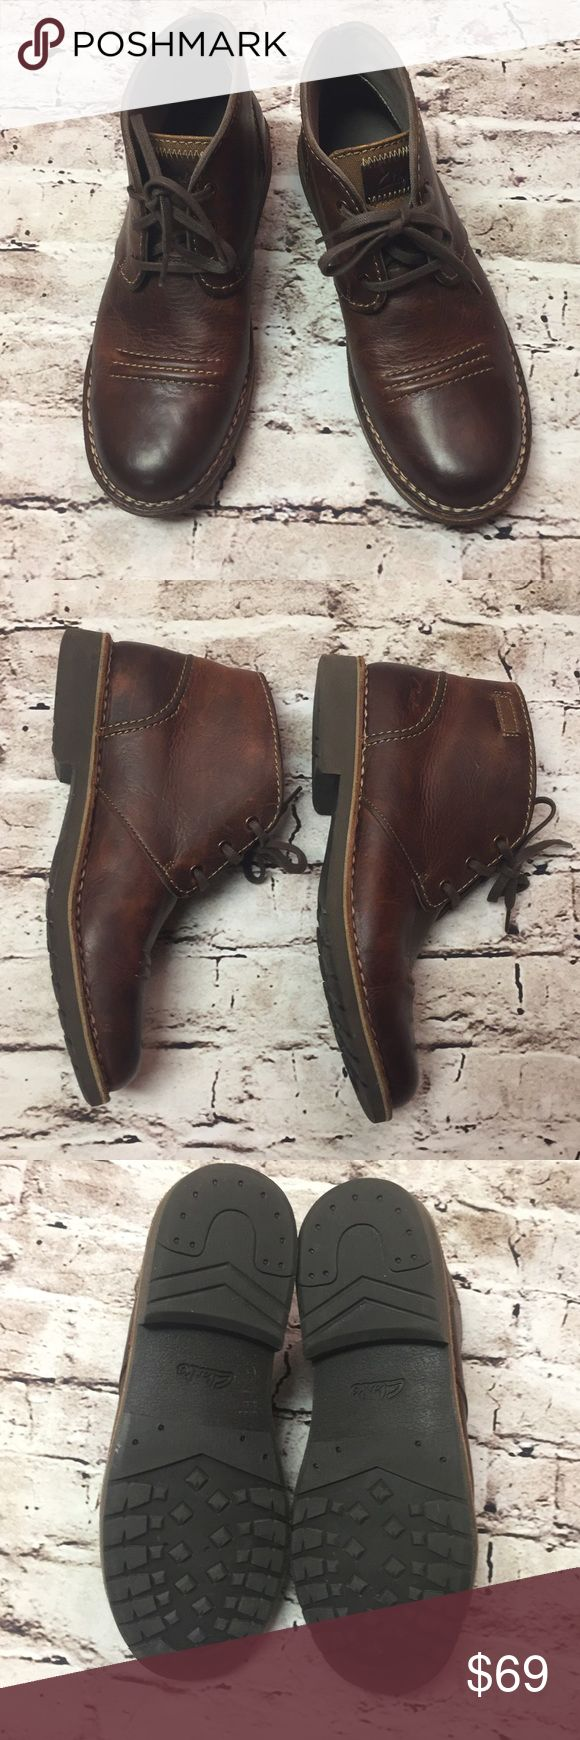 SZ 11.5 MEN'S CLARKS BOOTS These are a Brand new pair of tie boots by CLARKS. They have a leather upper and a sturdy canvas tongue. Rugged sole and a slightly distressed look to the leather. Clarks Shoes Chukka Boots